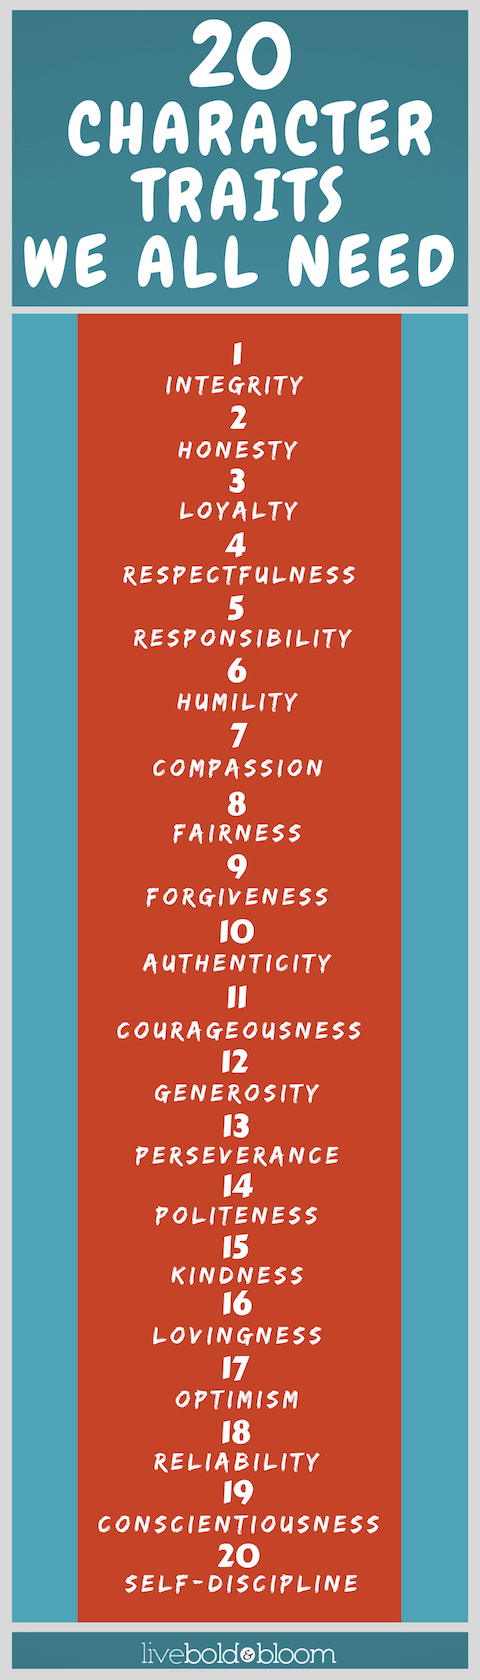 Desirable qualities in a person